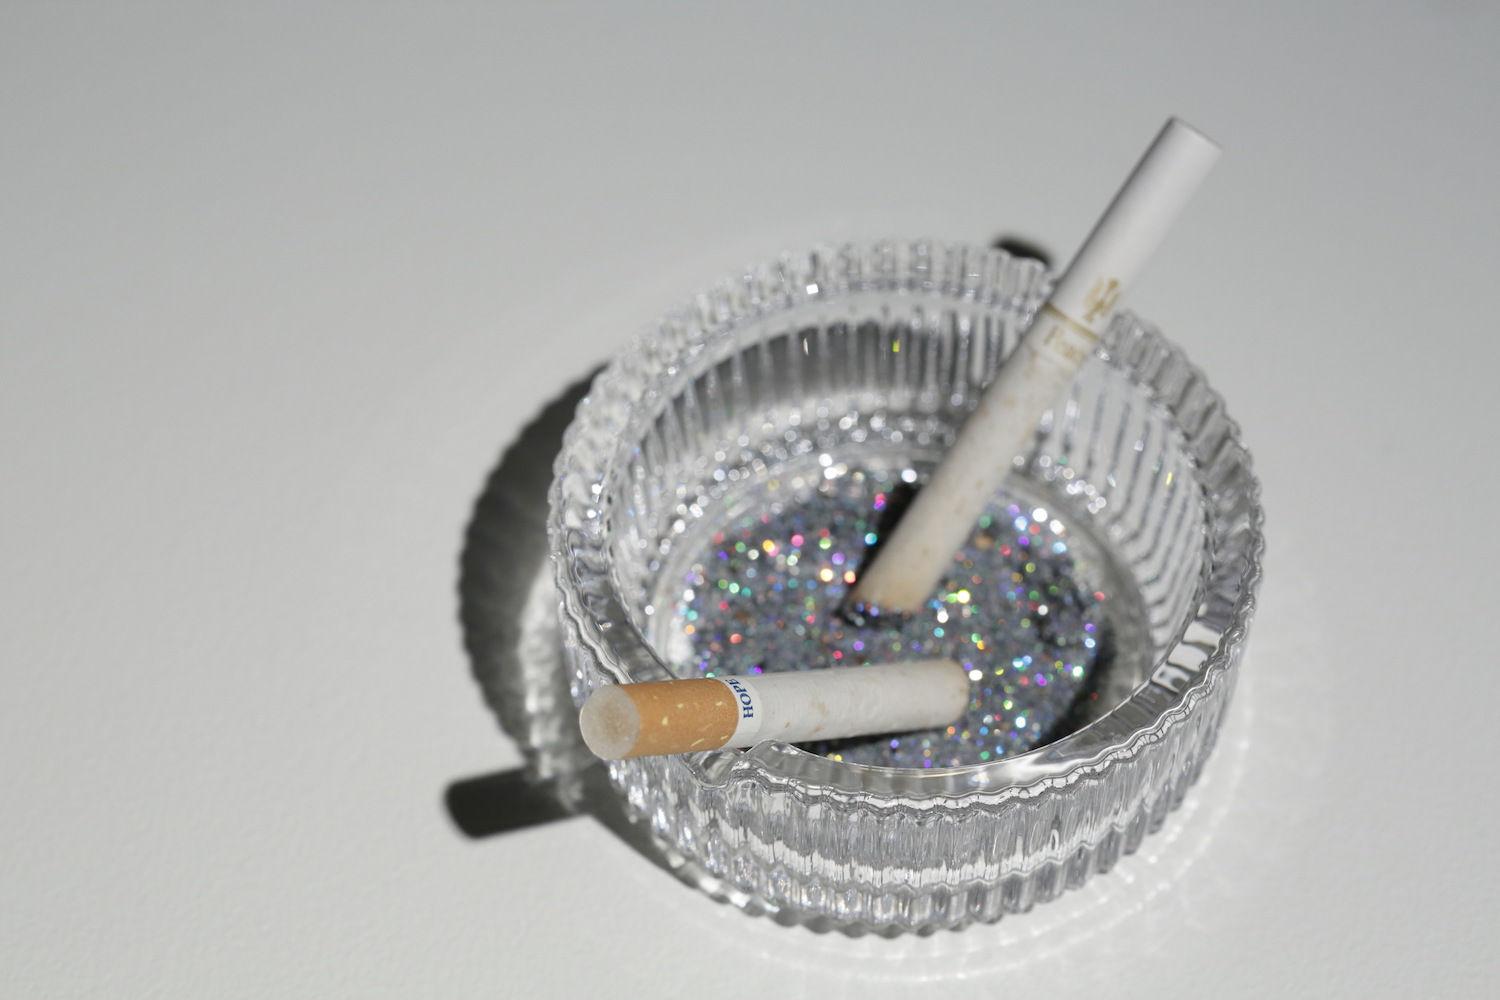 Our Hope, 2012, ashtray, cigarettes, glitter, ashes